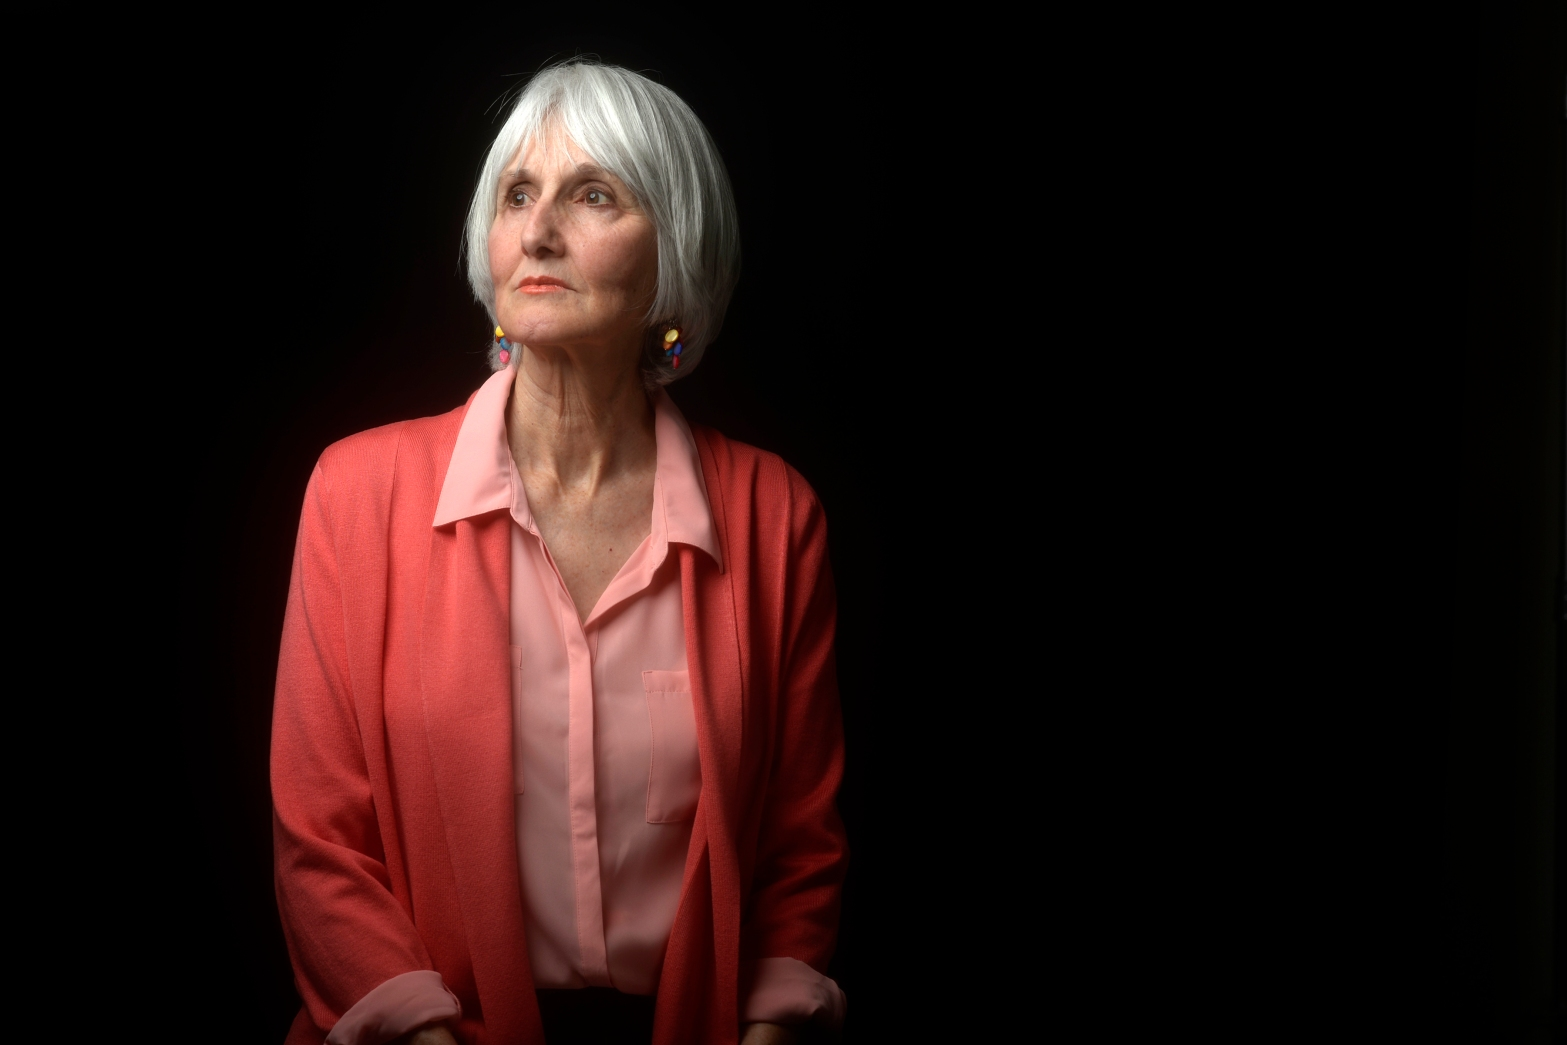 http://www.denverpost.com/2016/02/23/sue-klebold-dylan-seemed-normal-happy-before-columbine-attack/